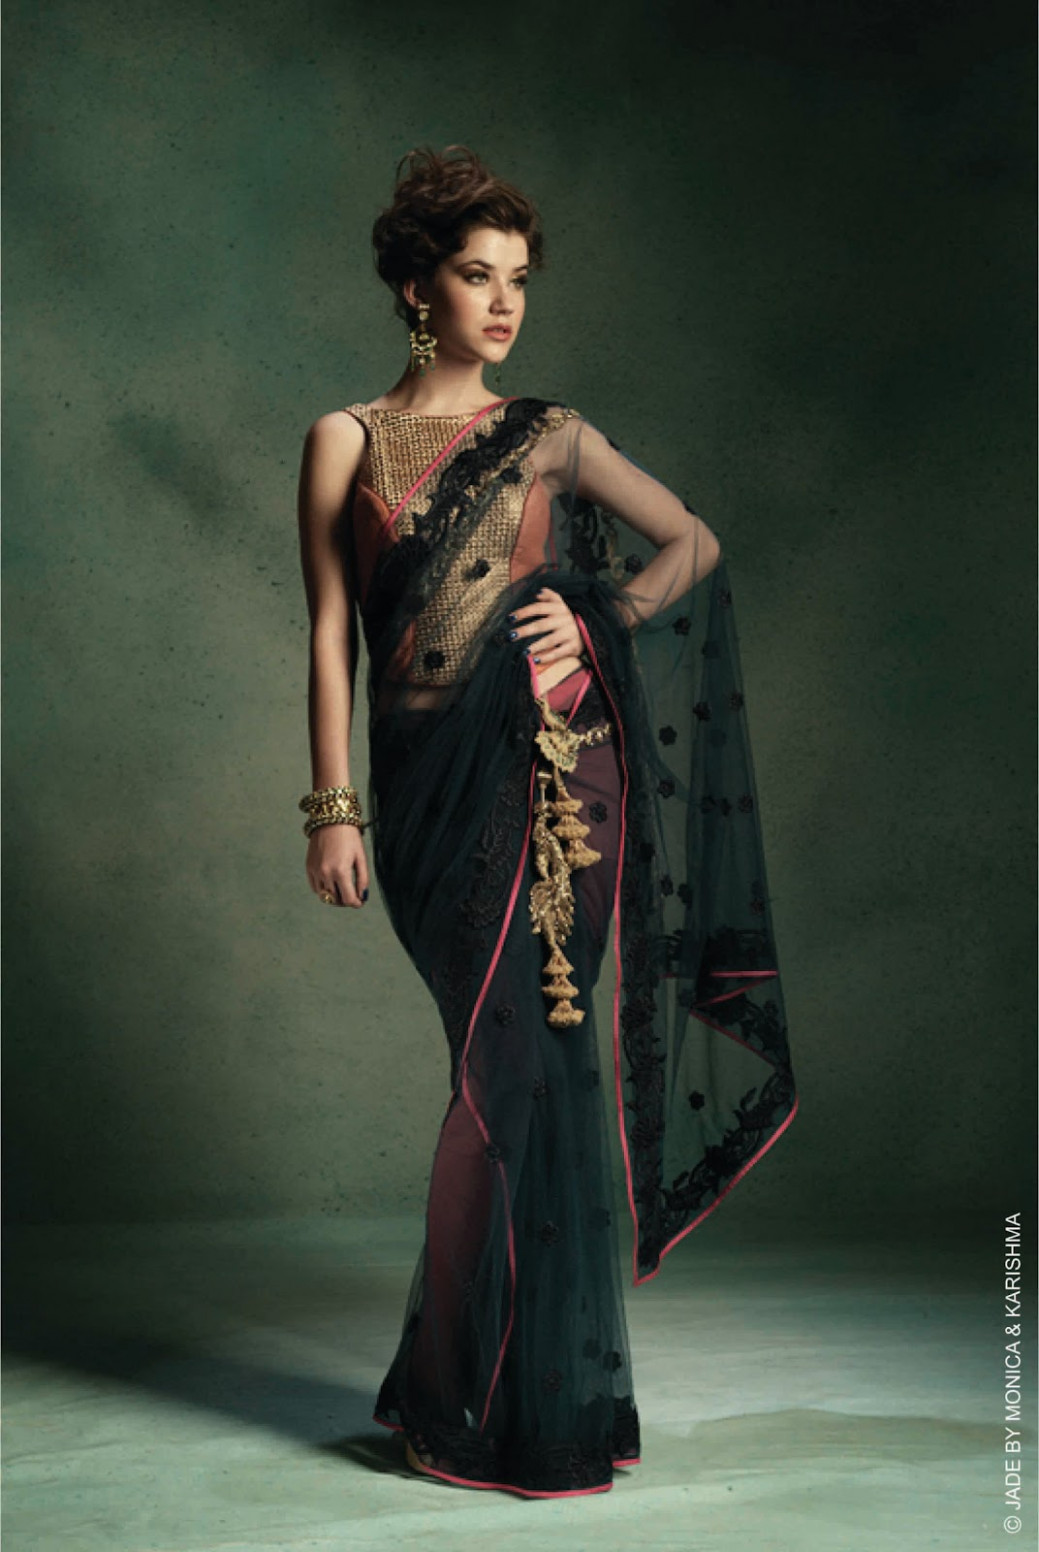 JADE COCKTAIL SAREE COLLECTION 2012/13 by Monica